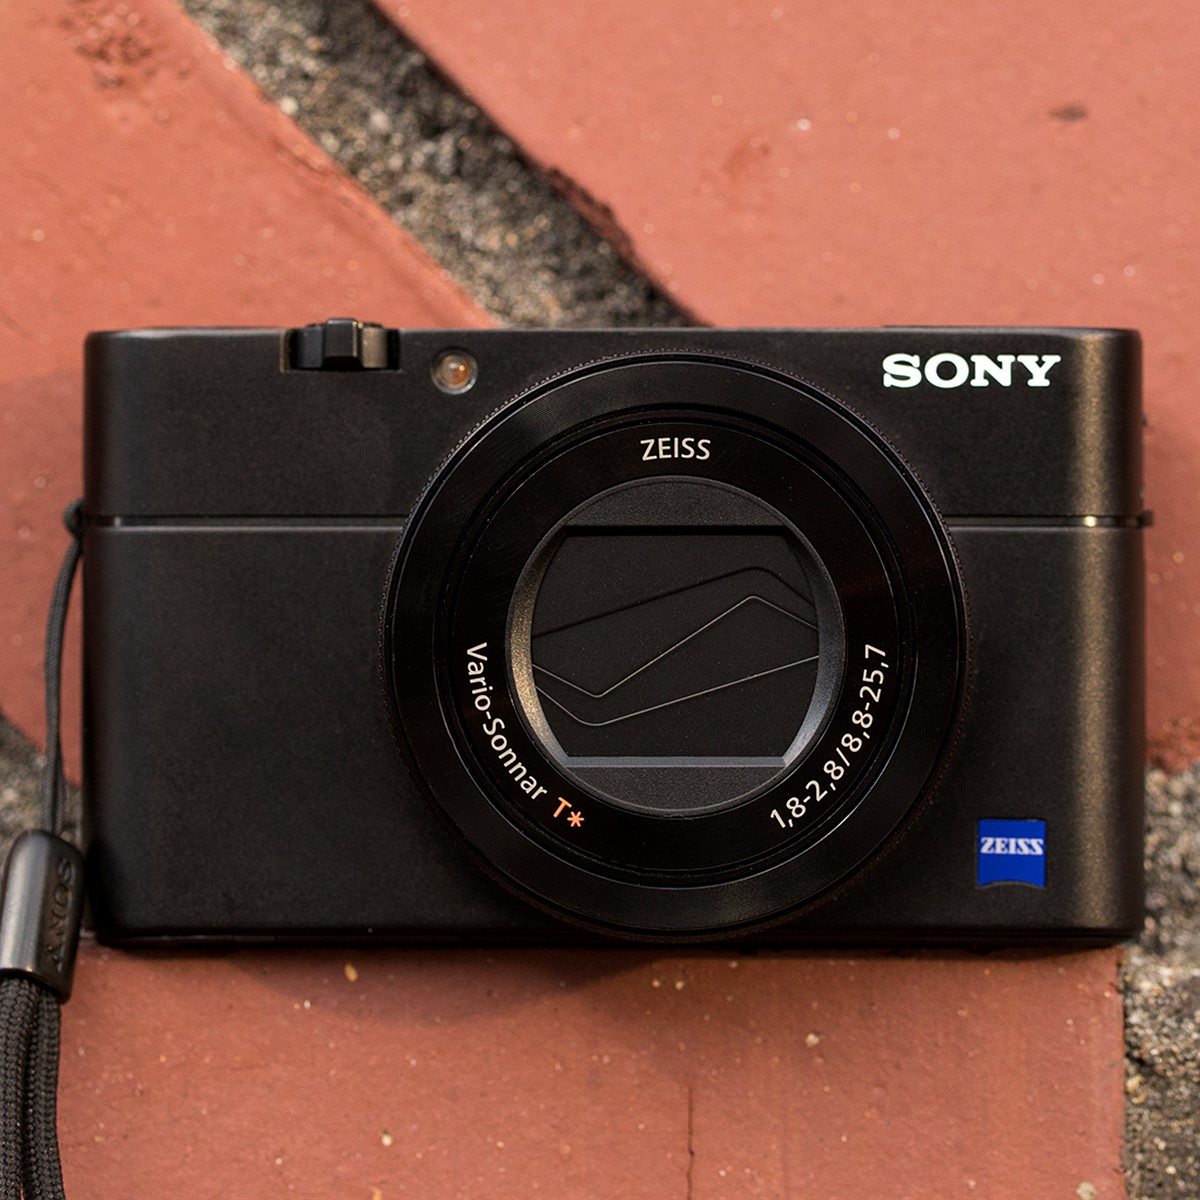 Sony replaces RX100 V with RX100 VA, bringing RX100 VI processor and